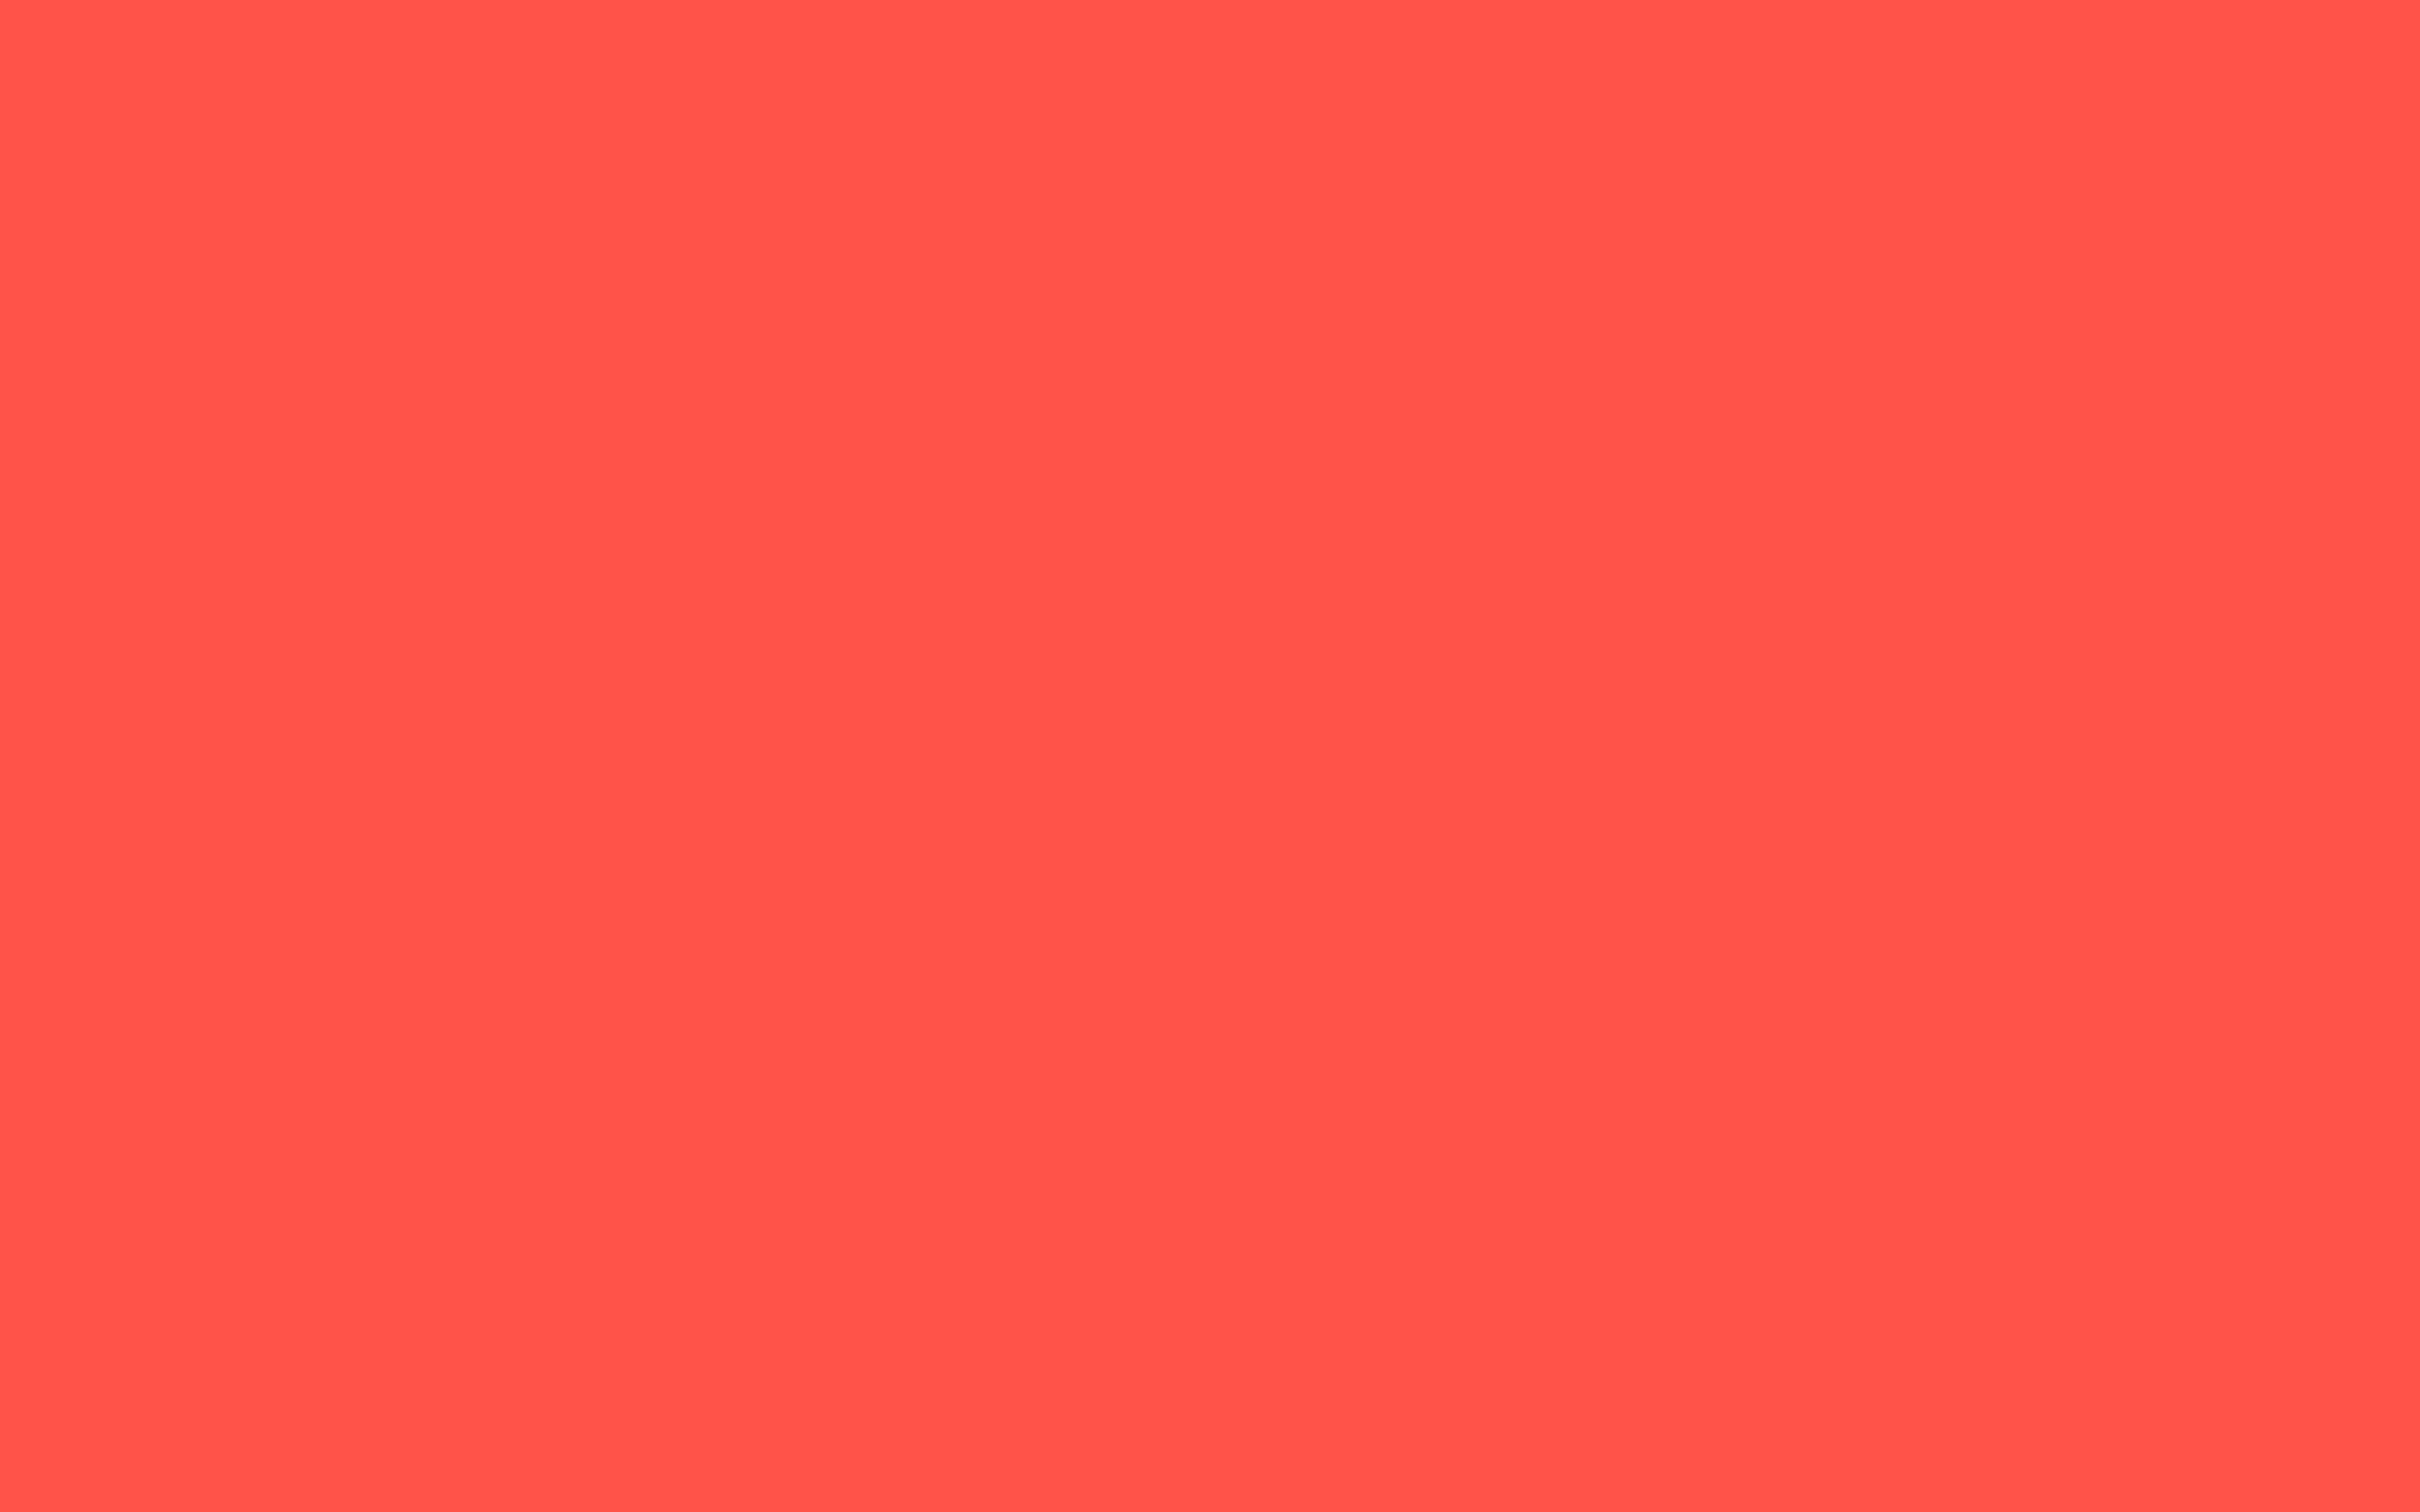 2560x1600  Red-orange Solid Color Background